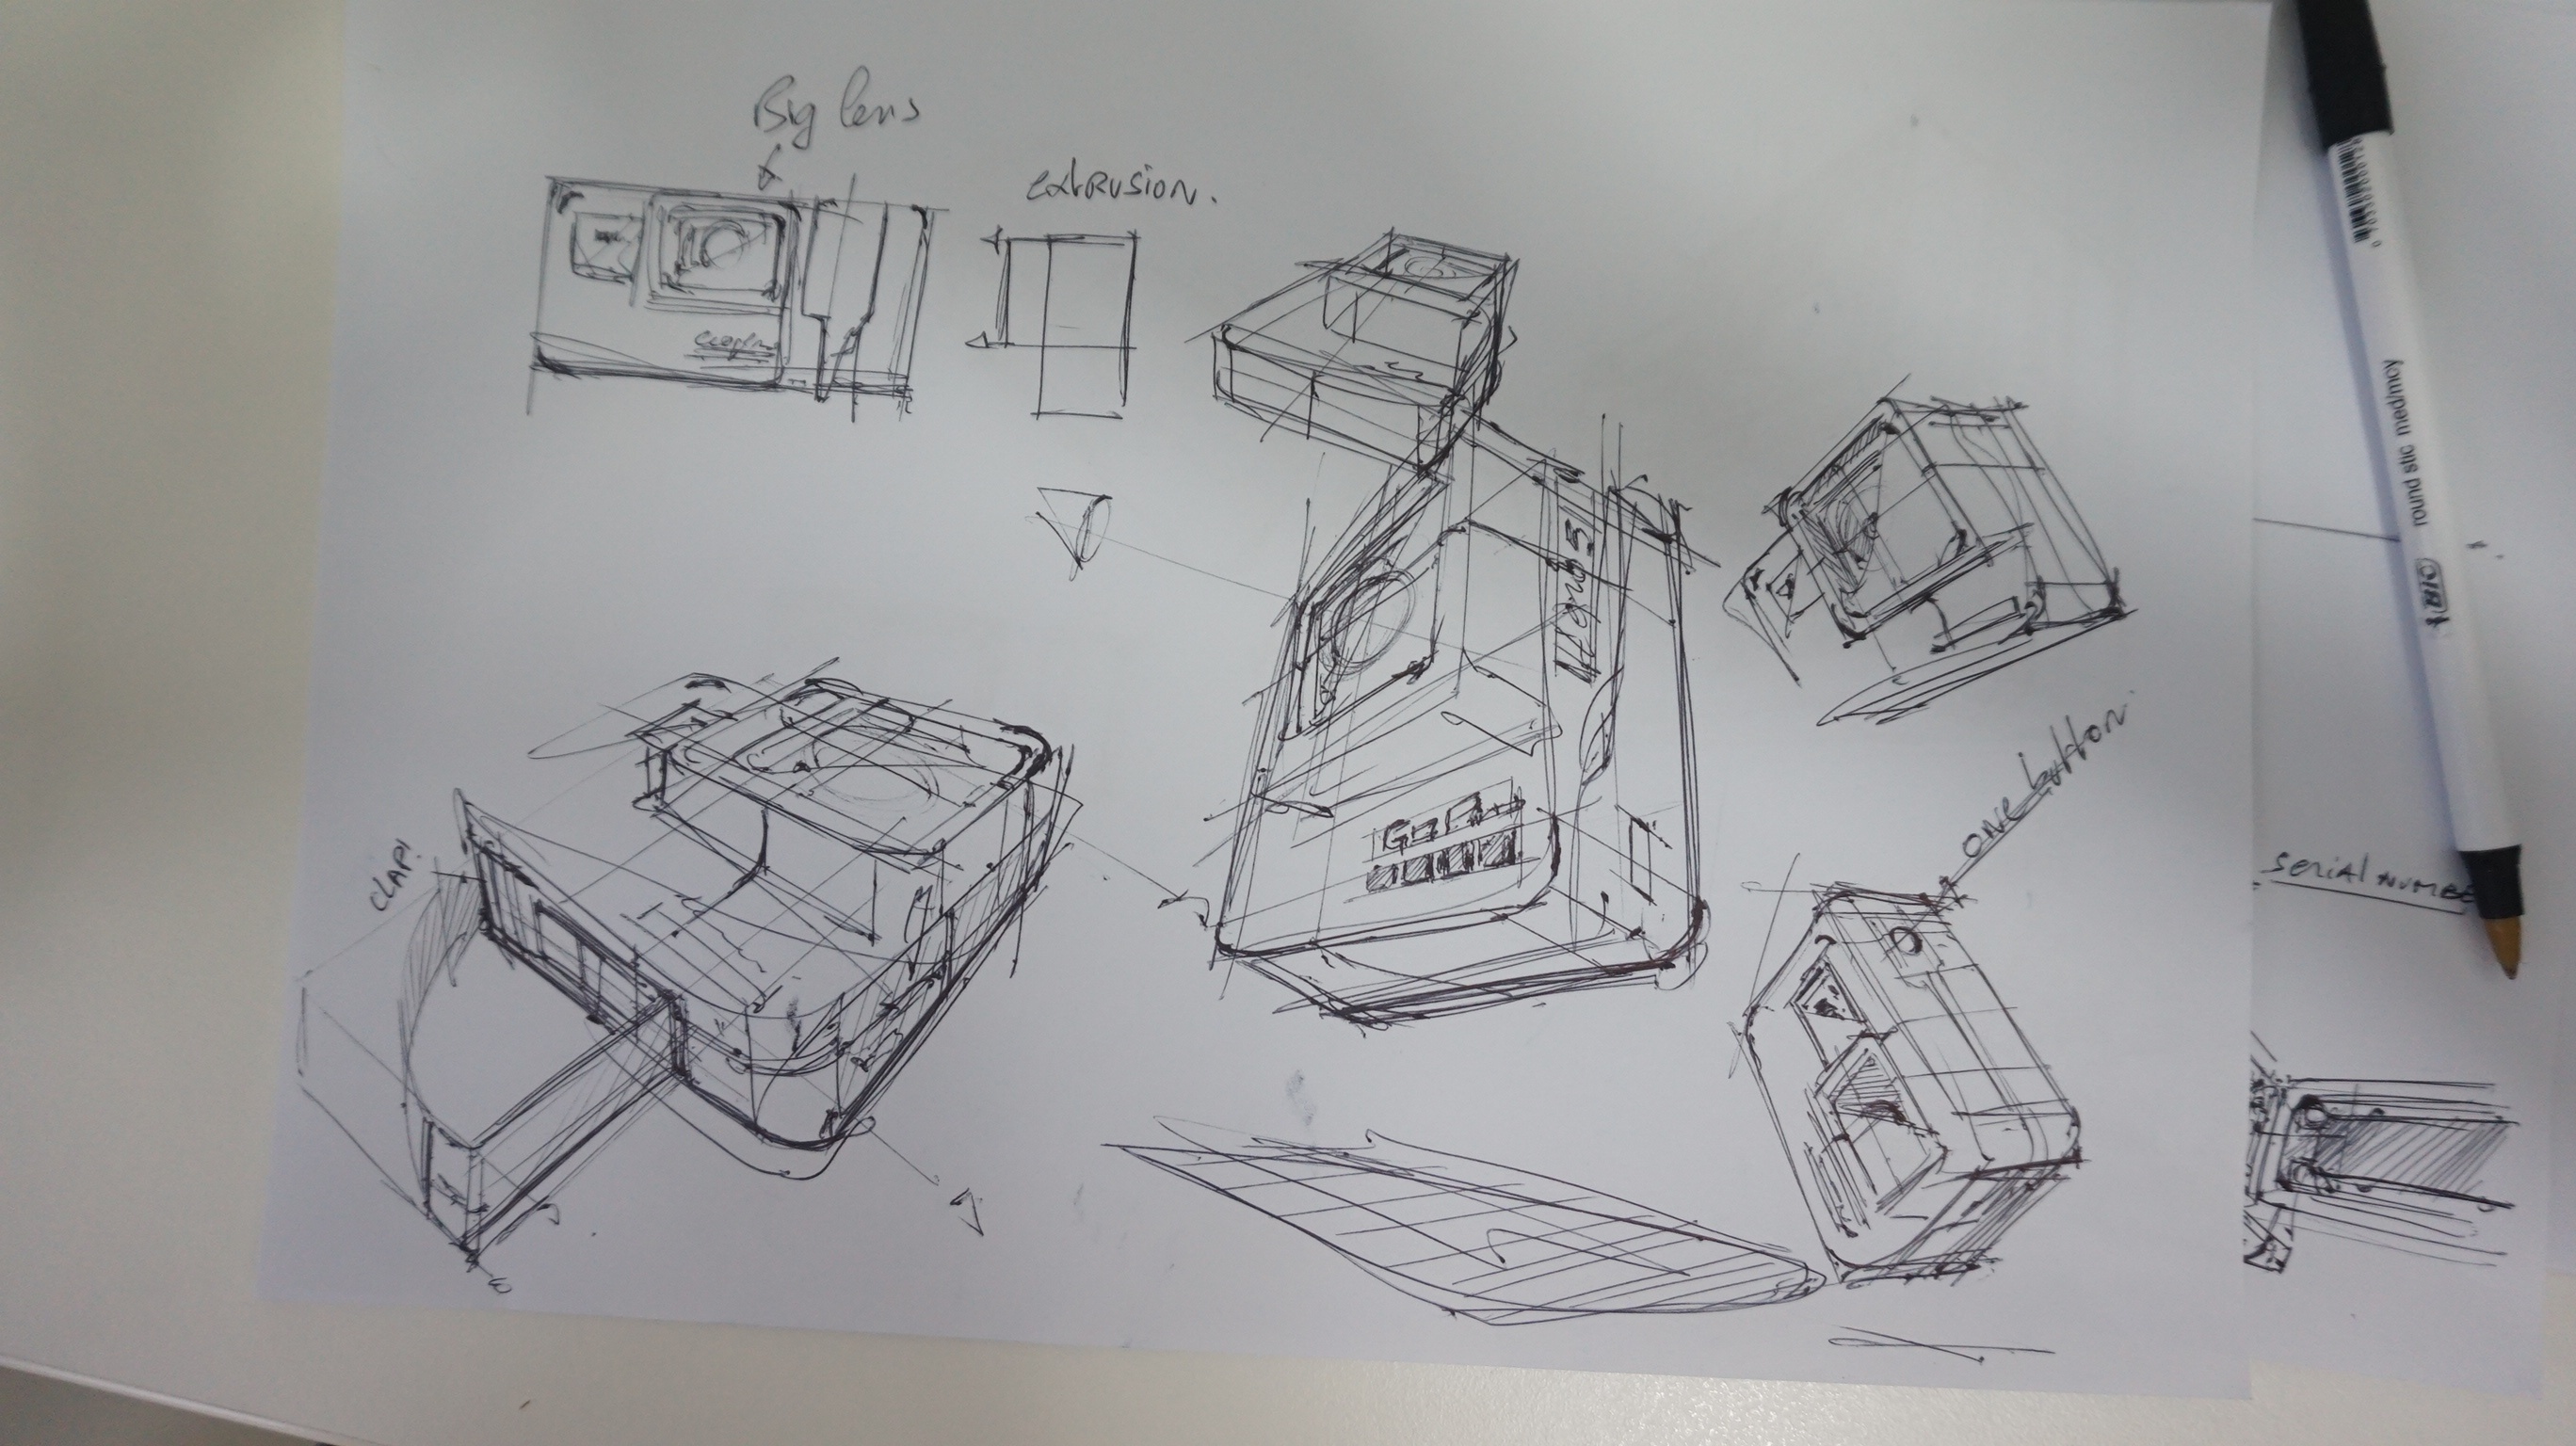 c Ugly Doodle Sketching a Go Pro - product design sketching tutorial the design sketchbook chou-tac